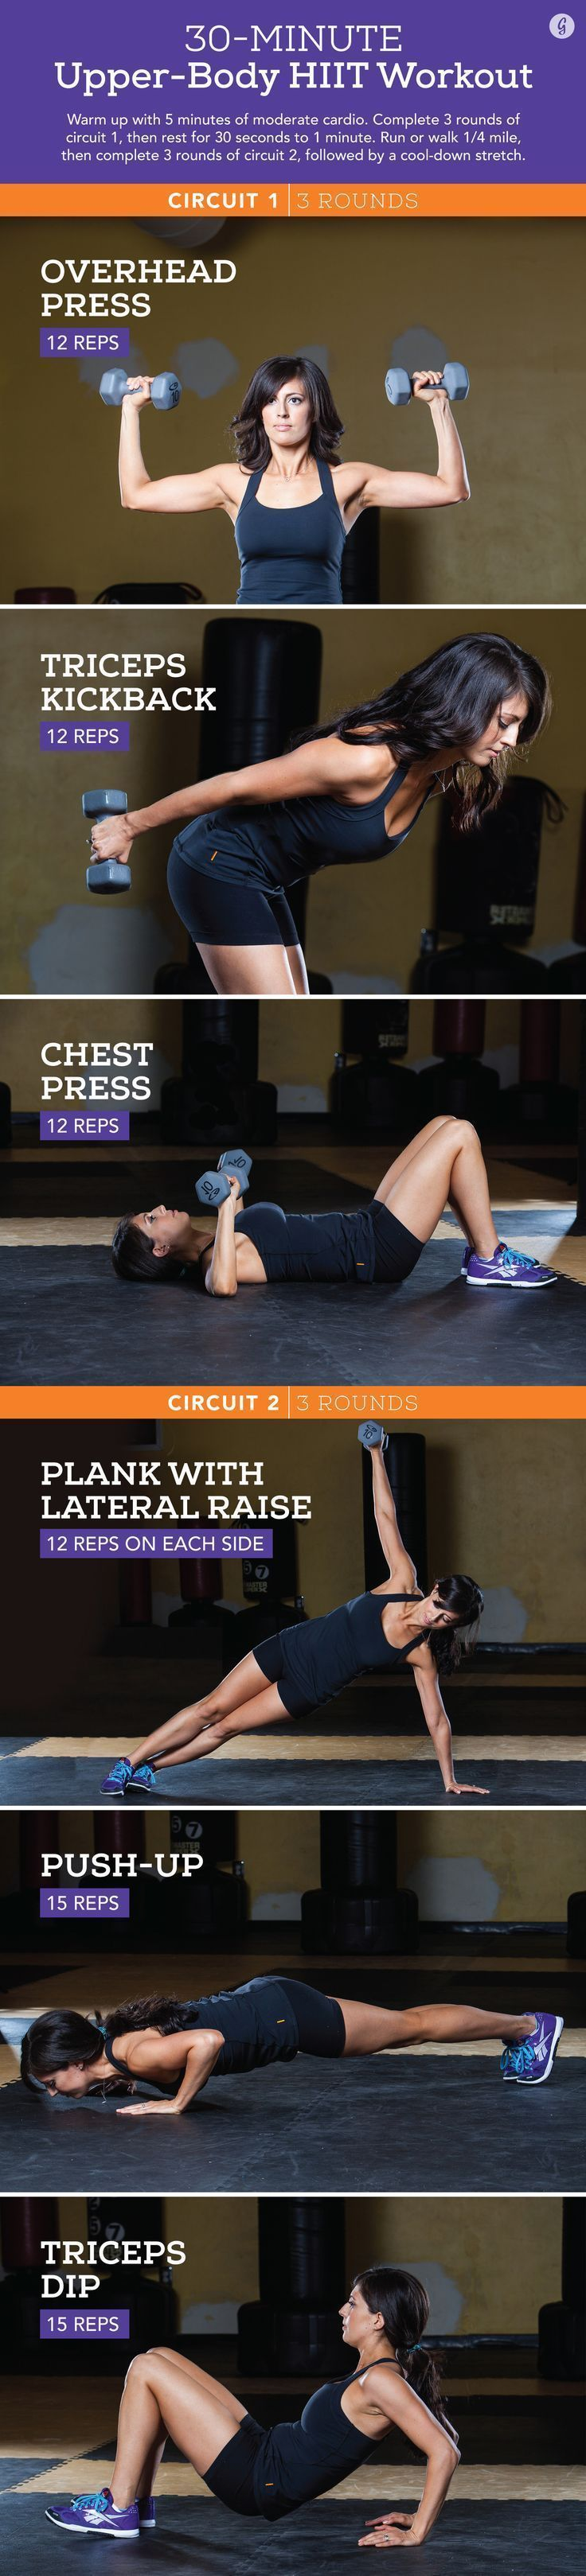 """""""HIIT workouts are quick and dirty, never lasting more than 30 minutes including a warm-up and short cool-down,"""""""